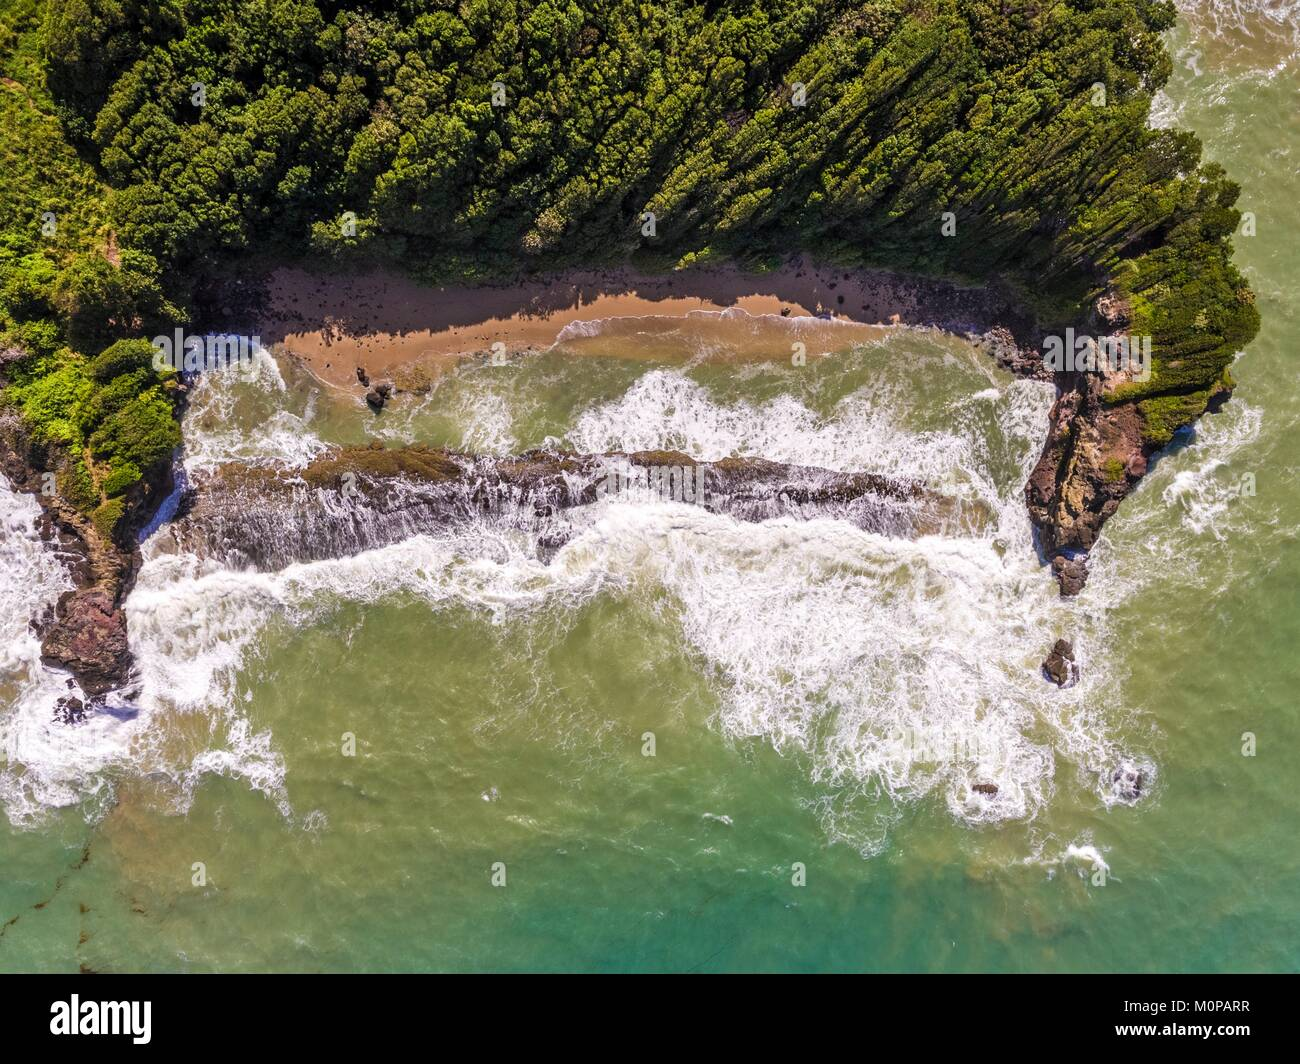 France,Caribbean,Lesser Antilles,Guadeloupe,Basse-Terre,Sainte-Rose,aerial view on Cluny beach (aerial view) - Stock Image